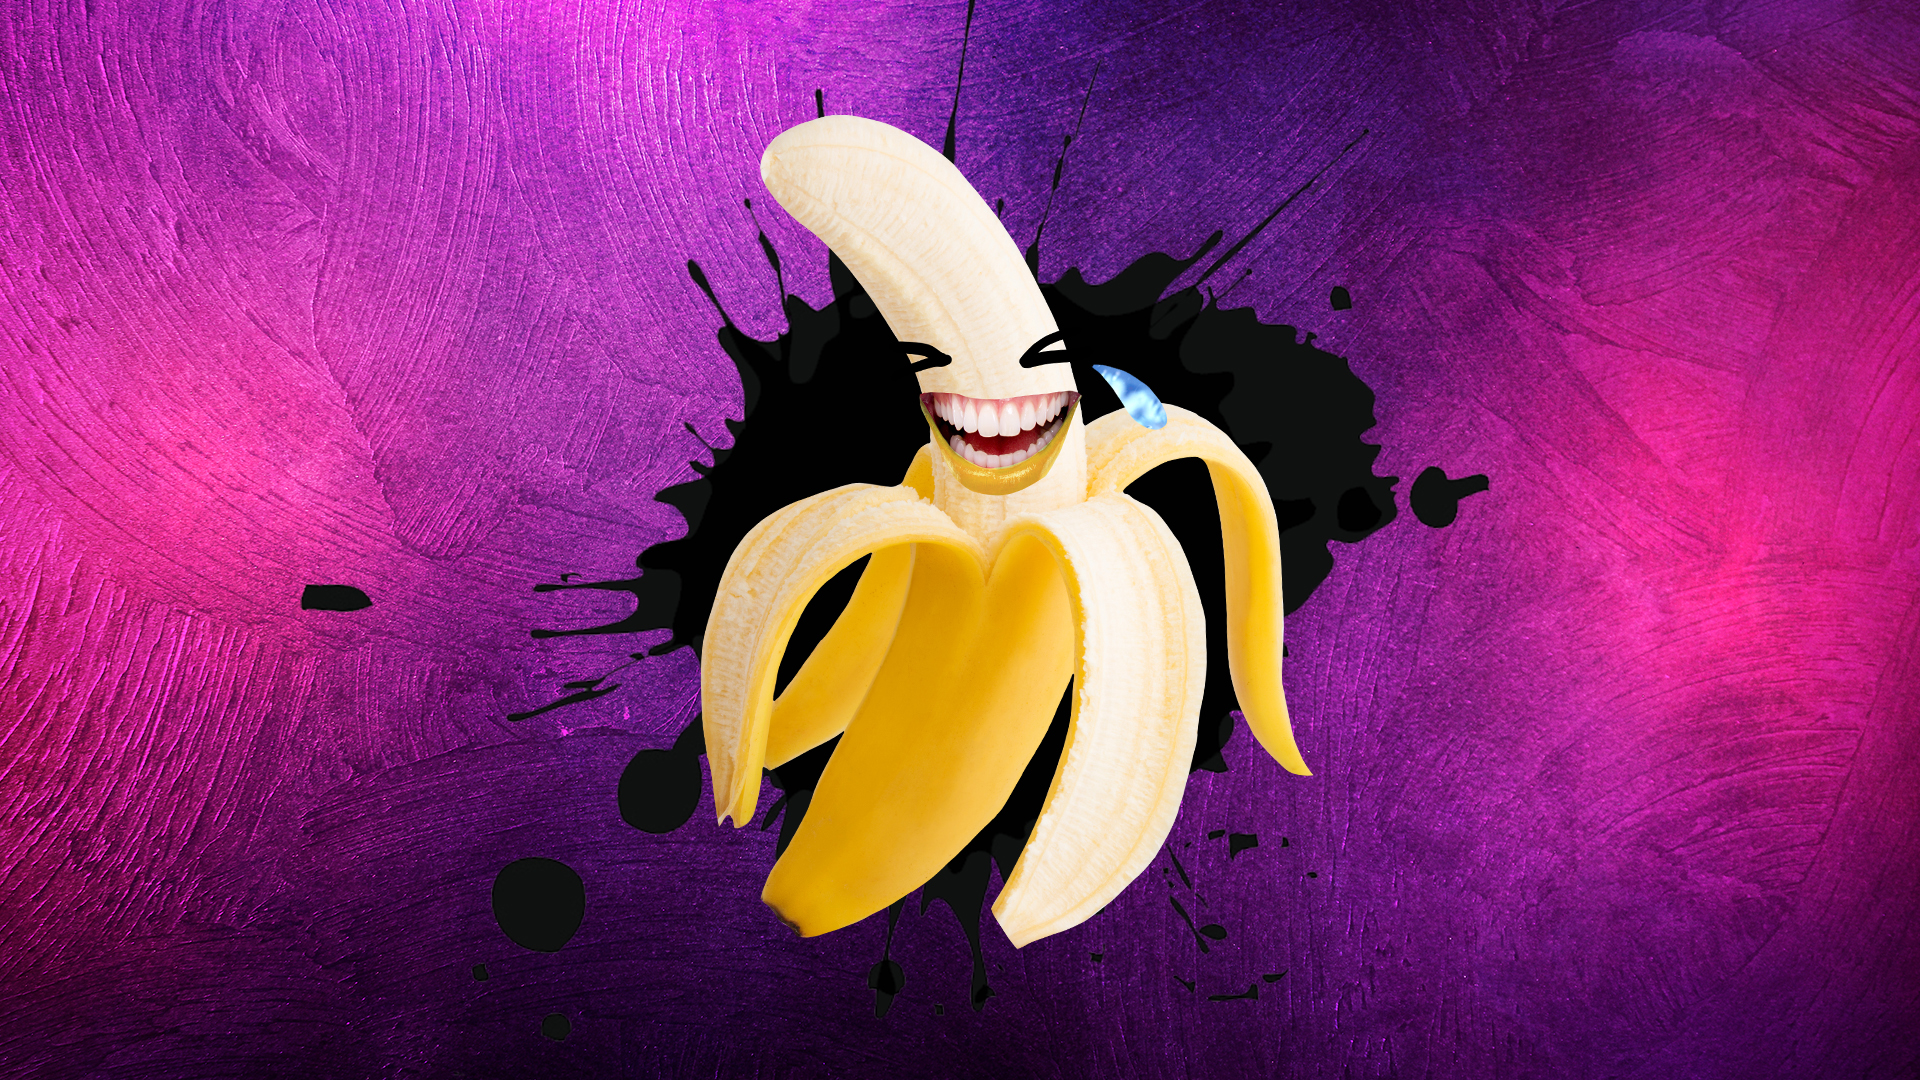 A laughing banana in front of a purple background